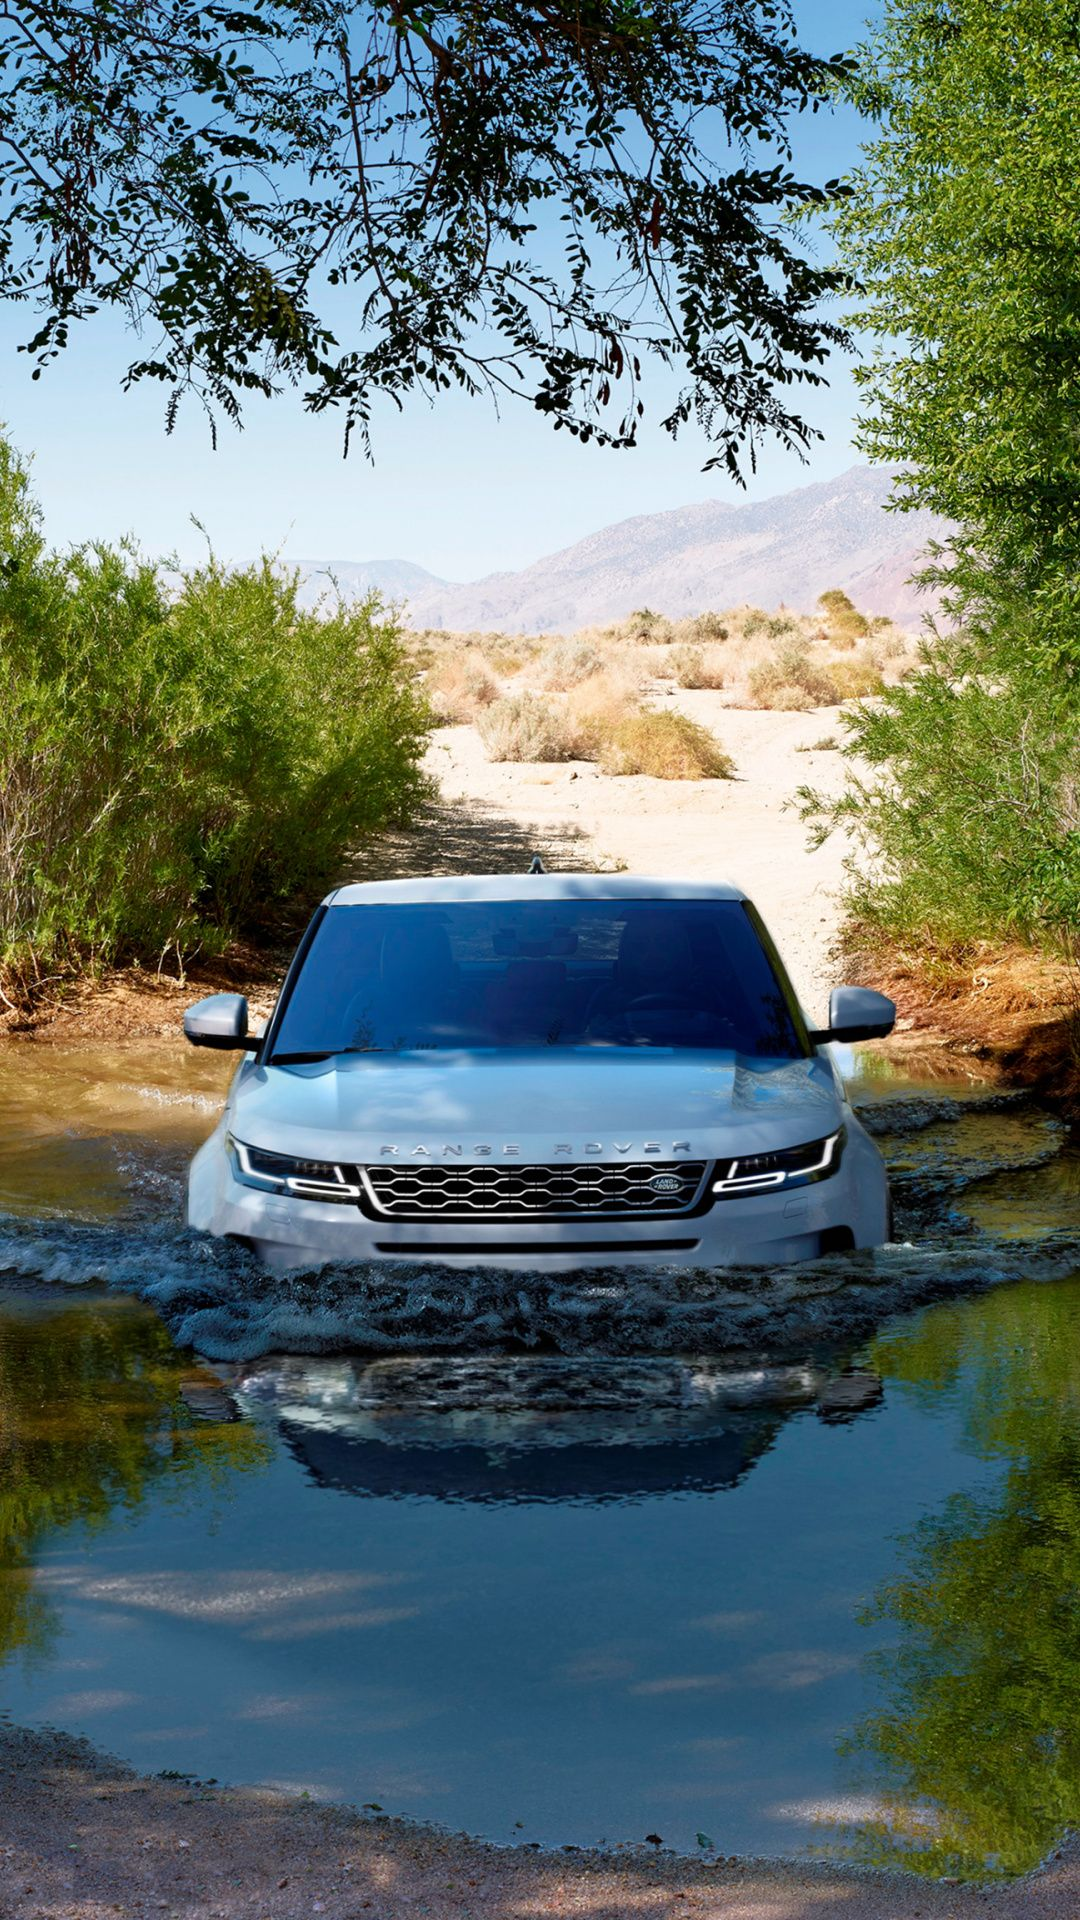 On this page you will find a lot wallpapers with 4k cars. Range Rover Car Full Hd Wallpaper Download